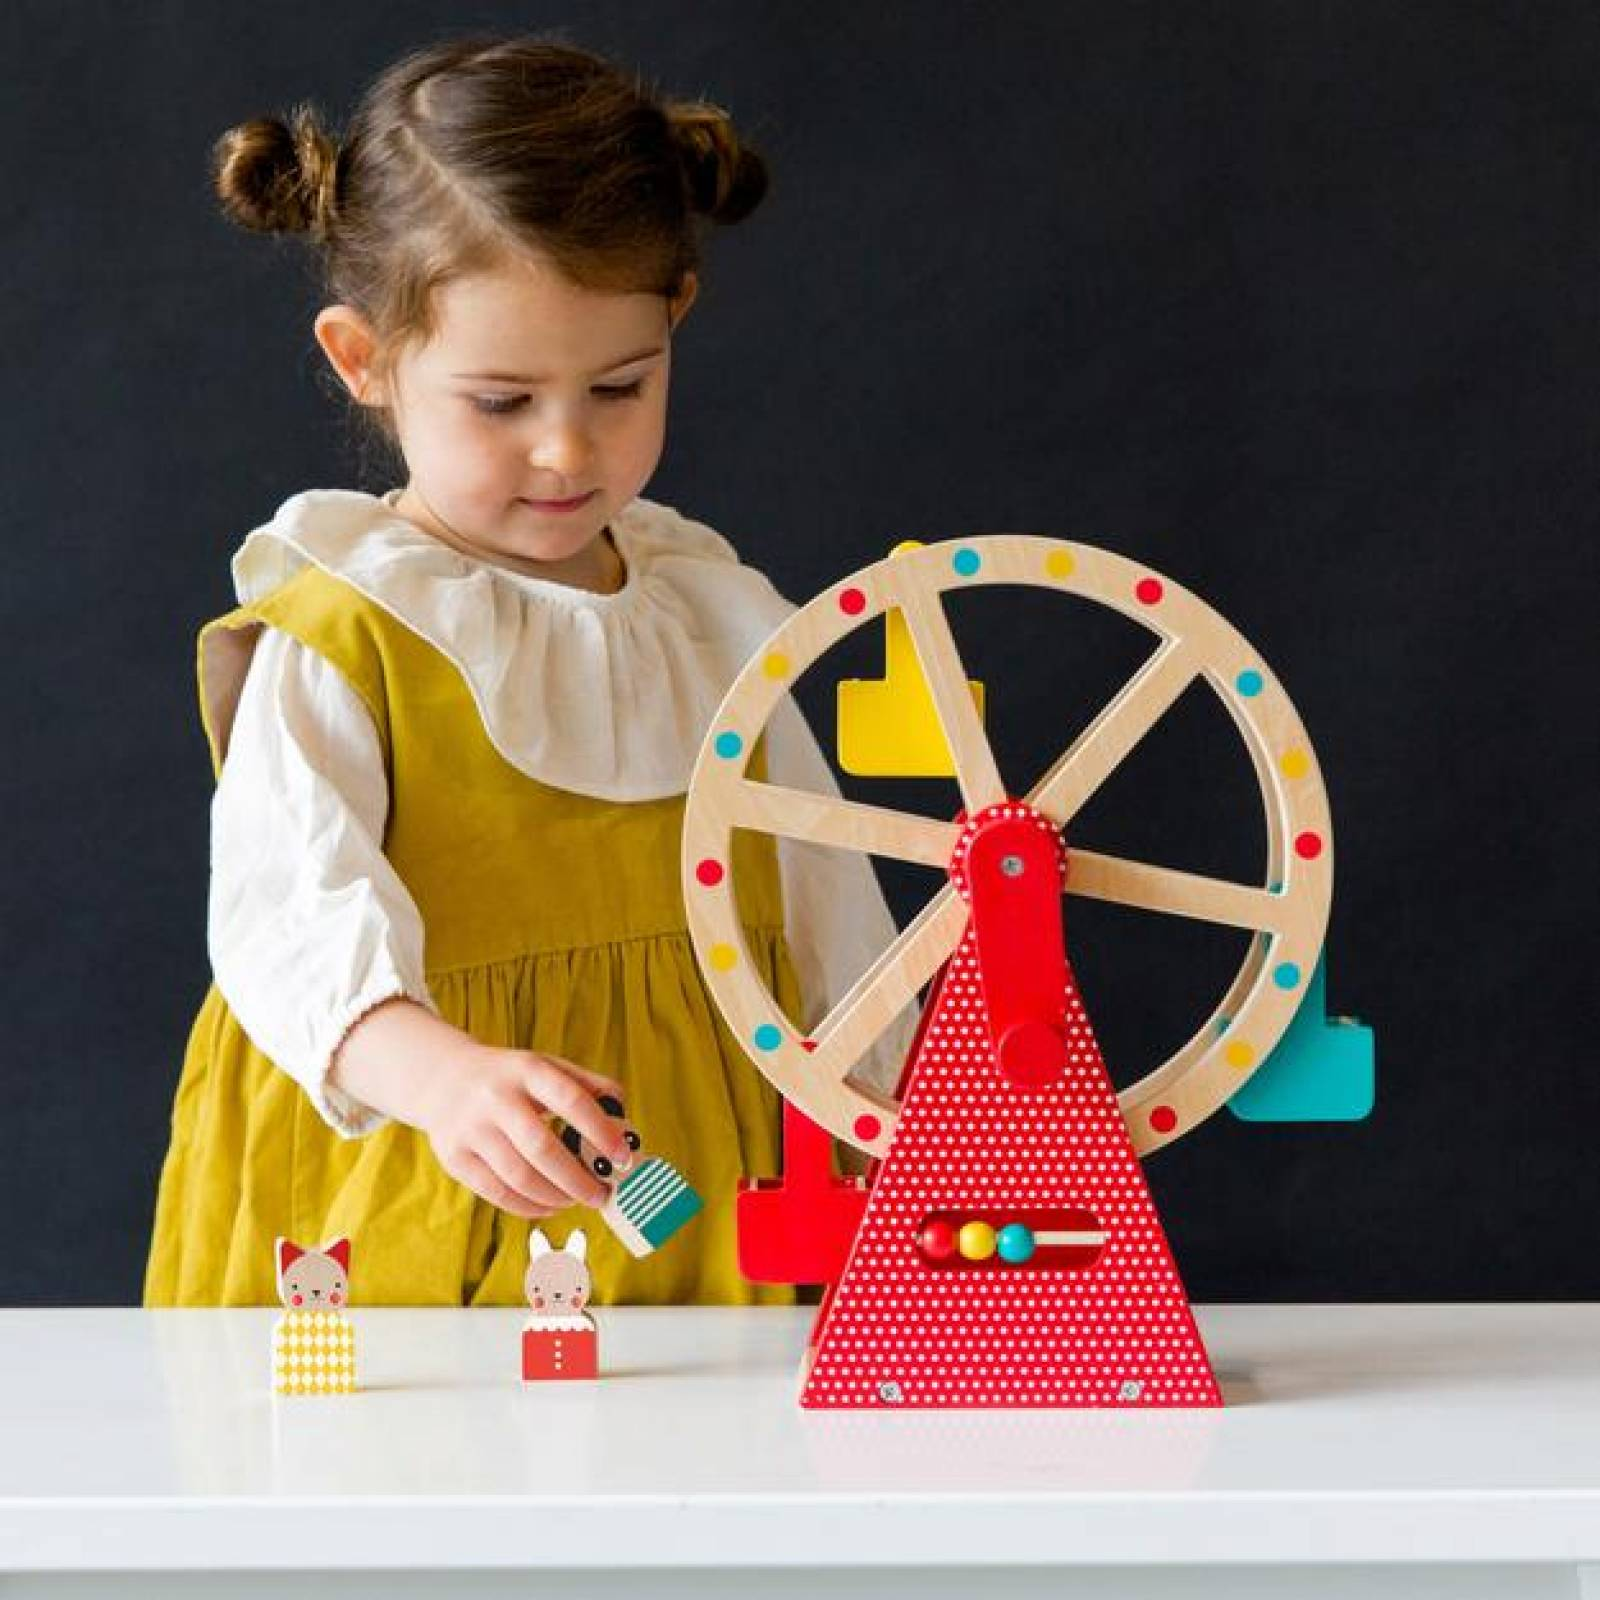 Wooden Carnival Play Set Ferris Wheel Toy By Petit Collage thumbnails